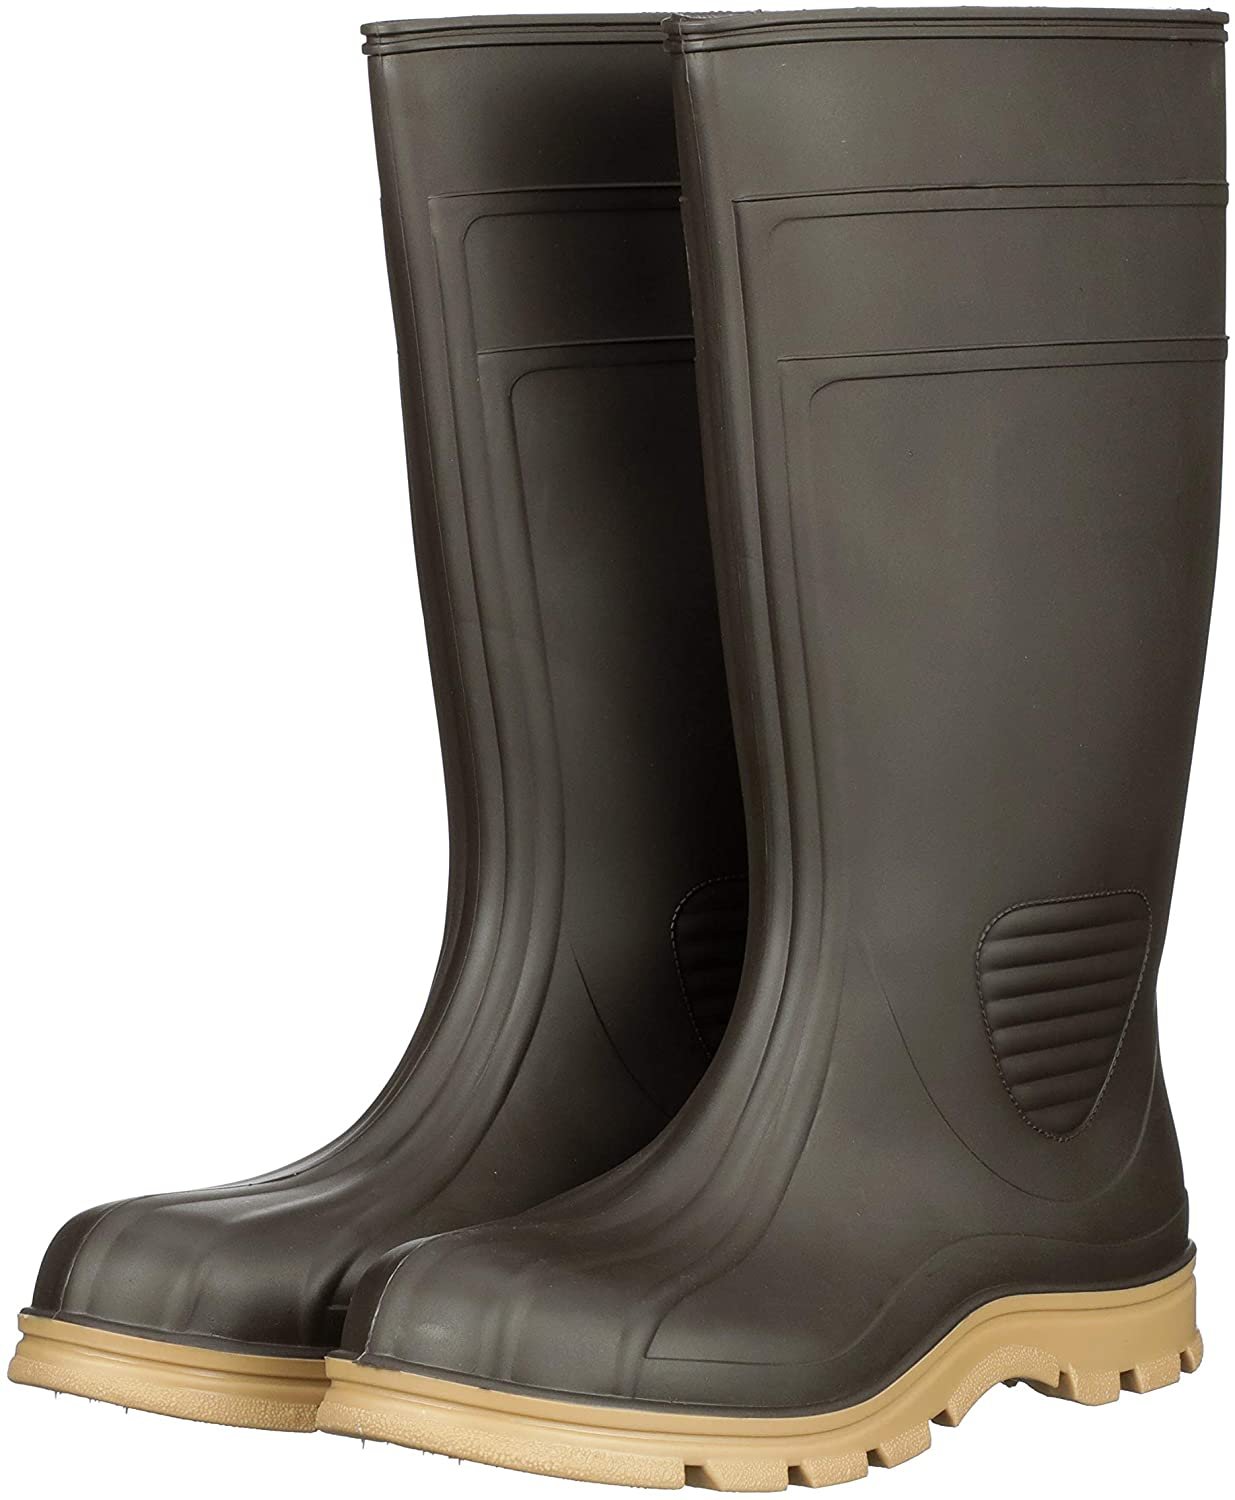 "FarmTuff 15"" Plain Toe Industrial Durable Ag Boot"